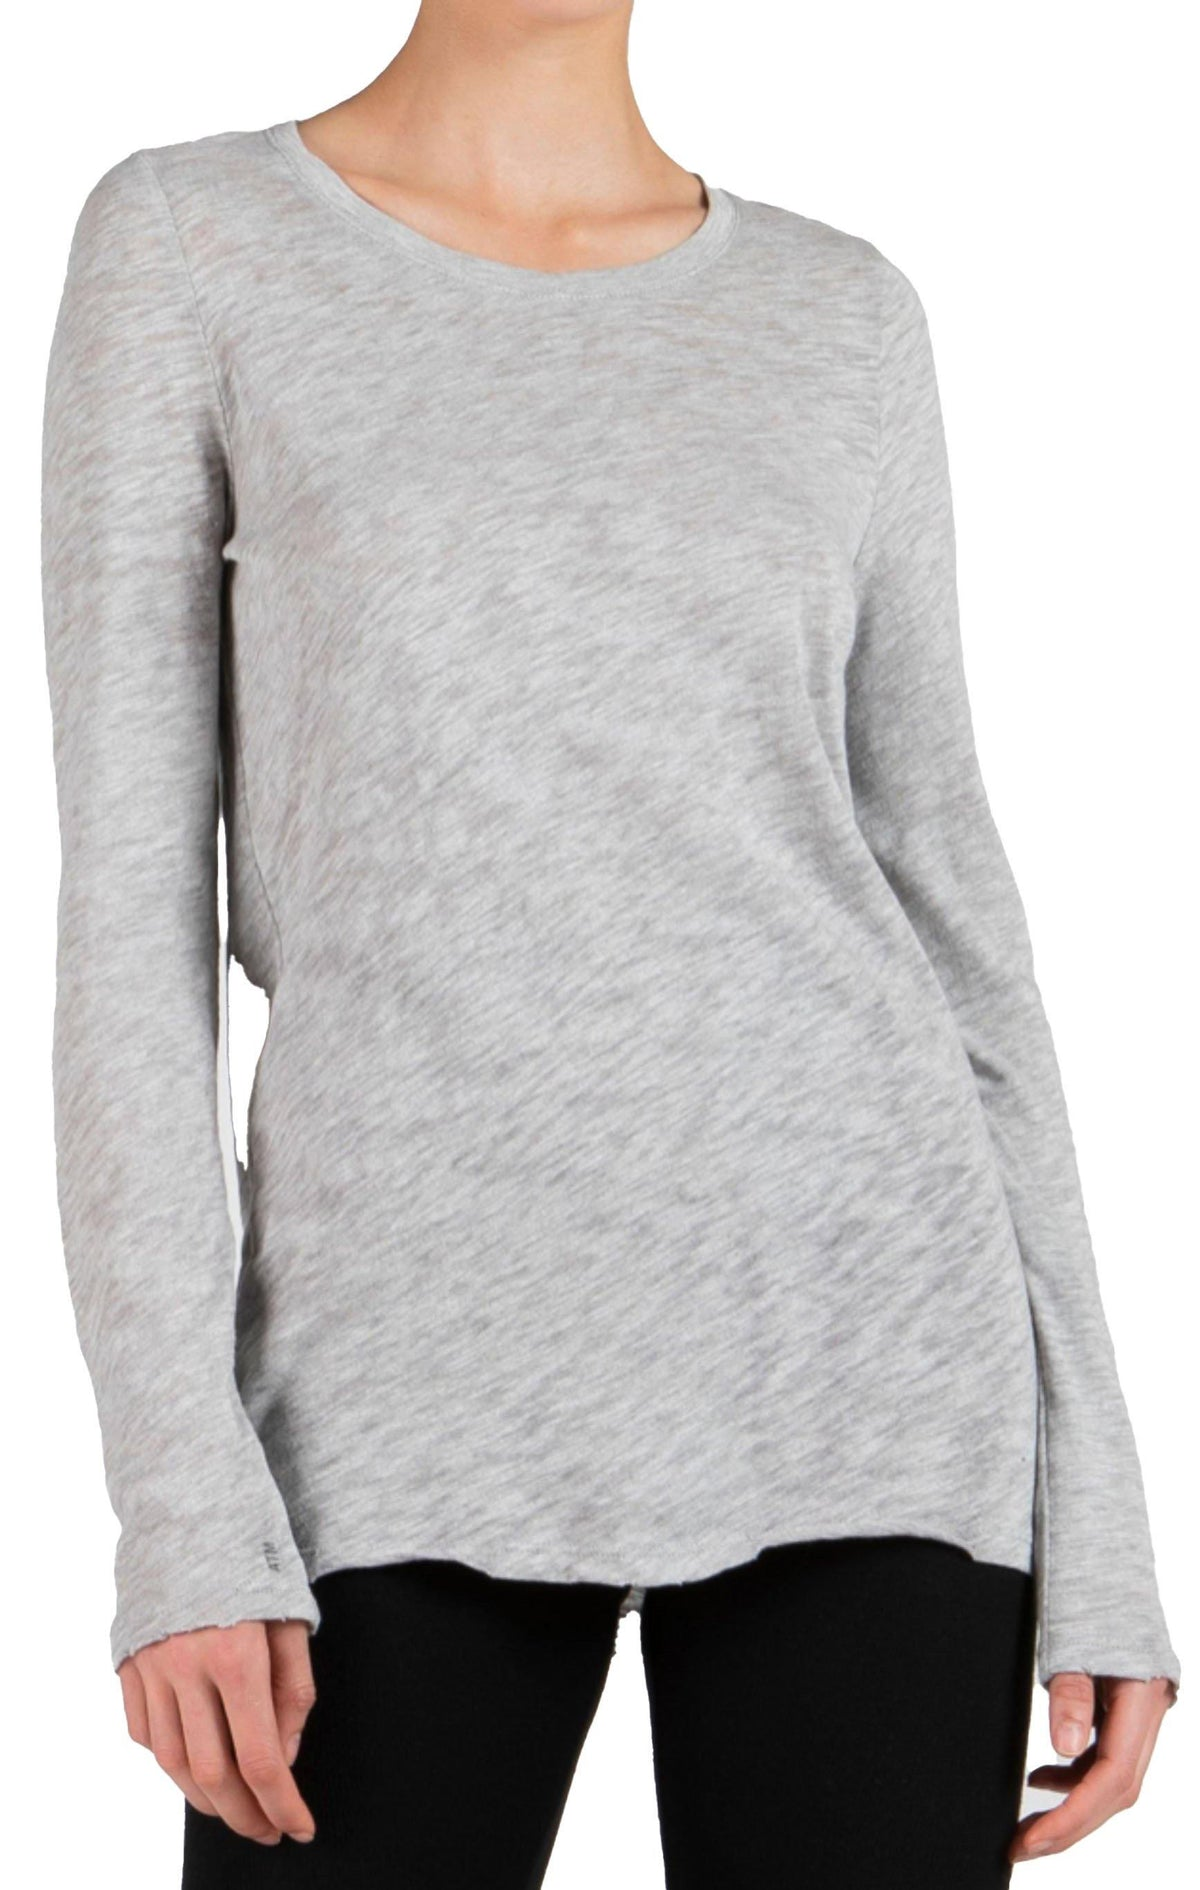 Destroyed Wash Long Sleeve Tee - Grey - Wheat Boutique